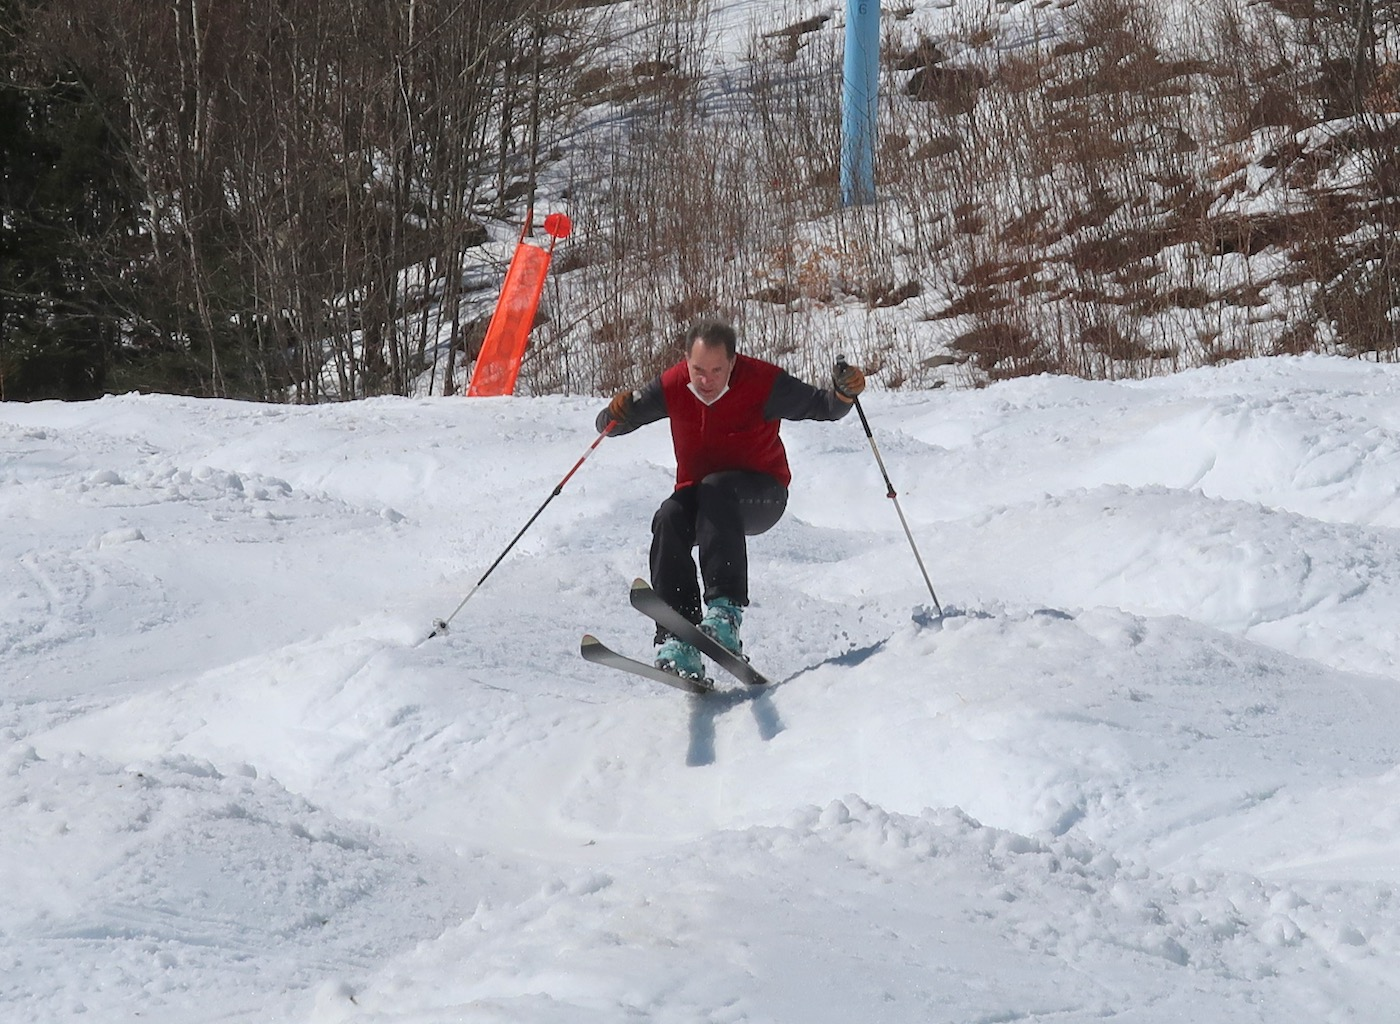 skiing the bumps